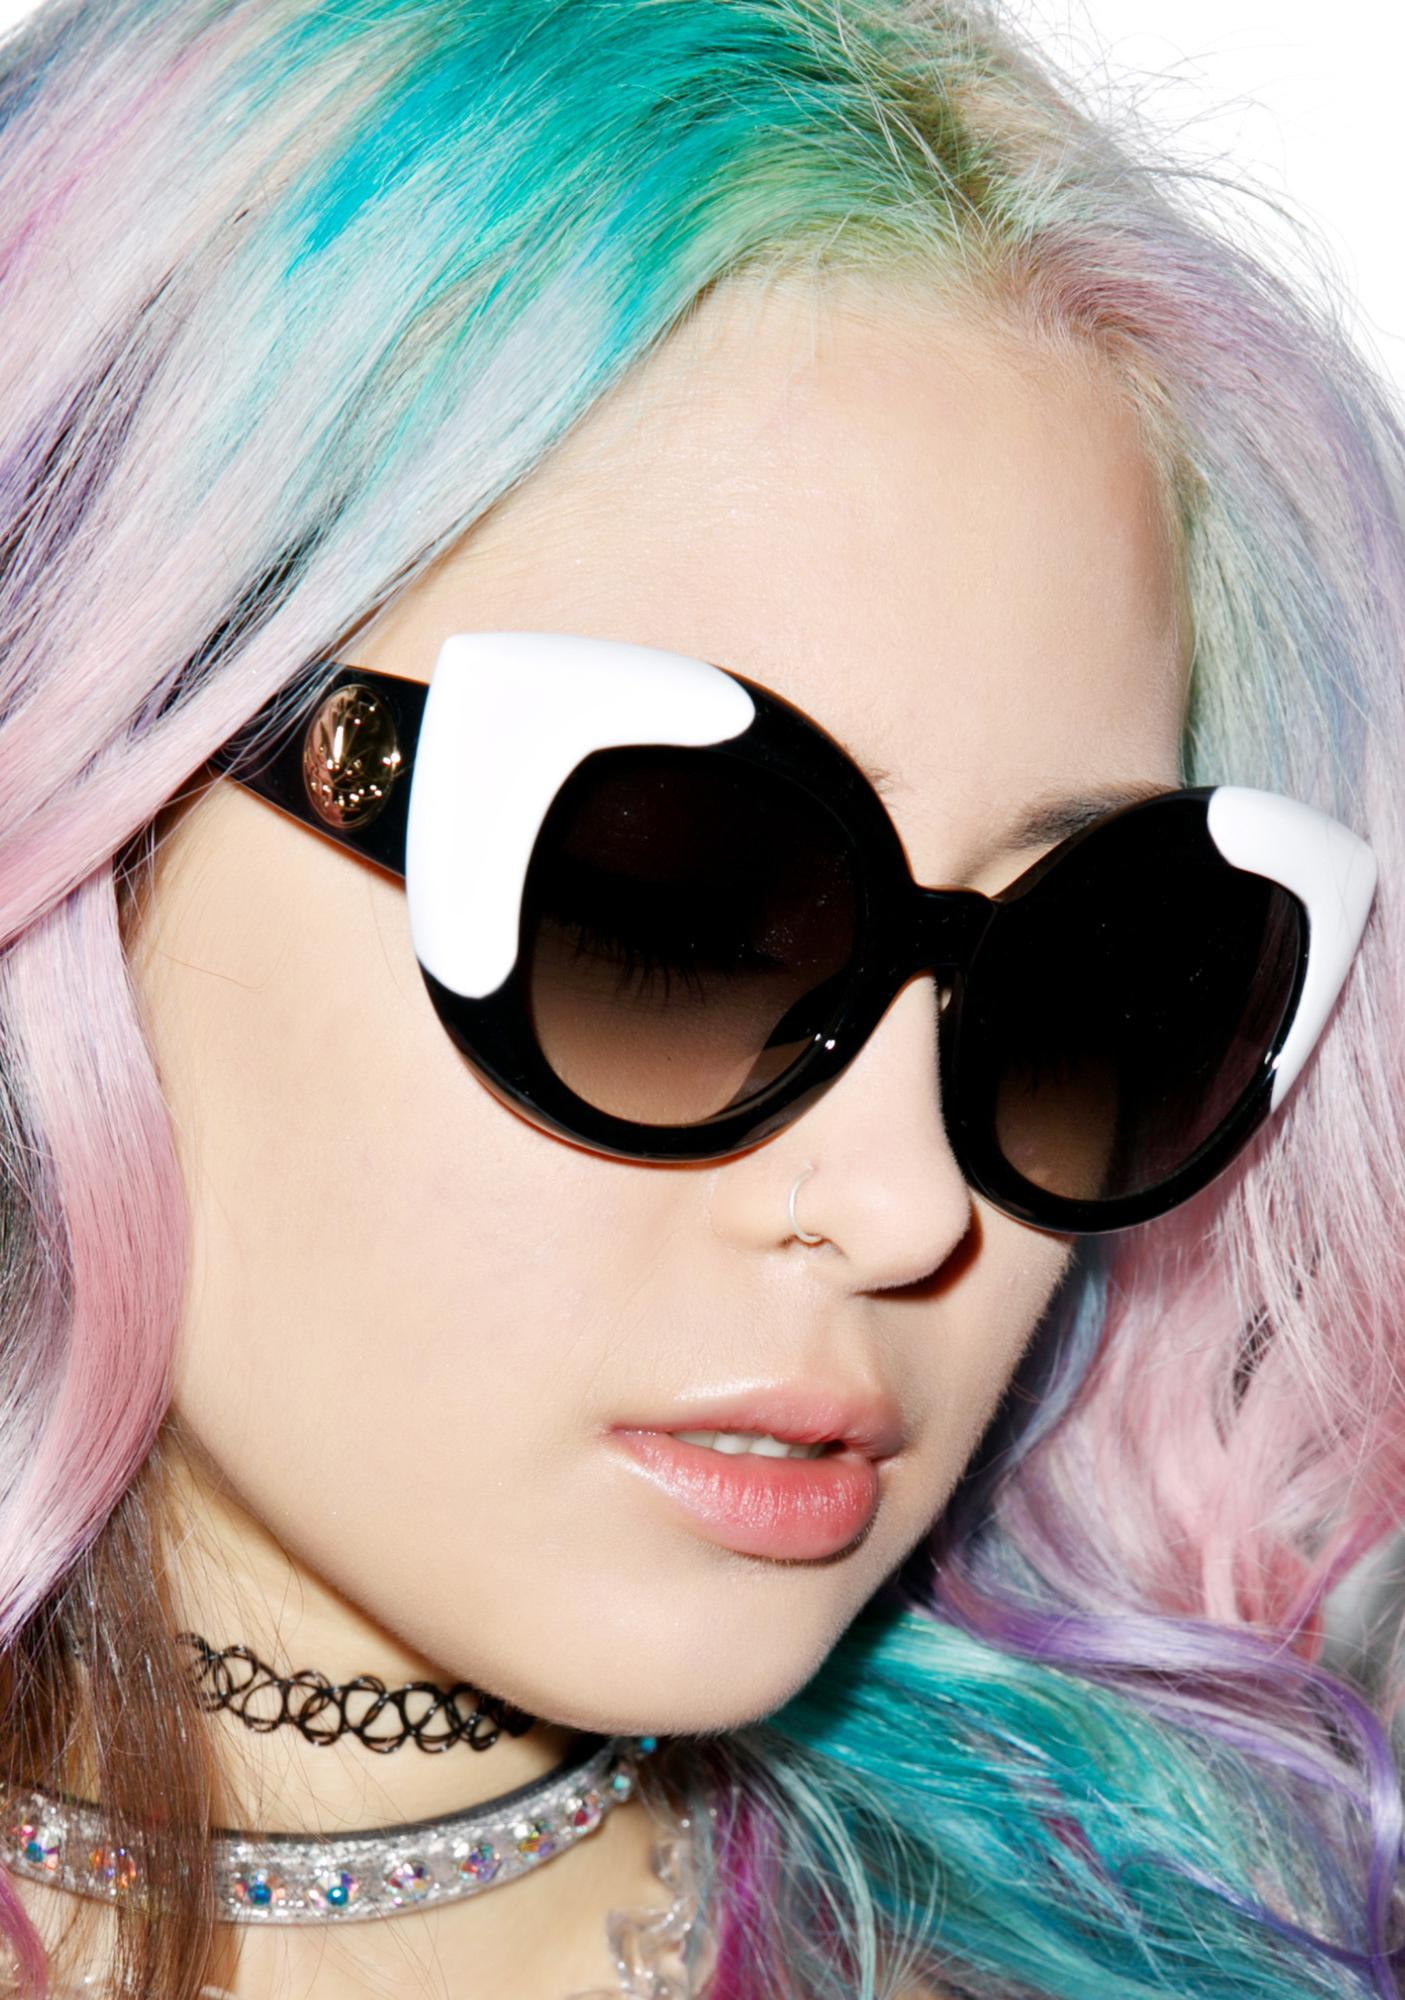 Crap Eyewear The Gradient Diamond Brunch Sunglasses